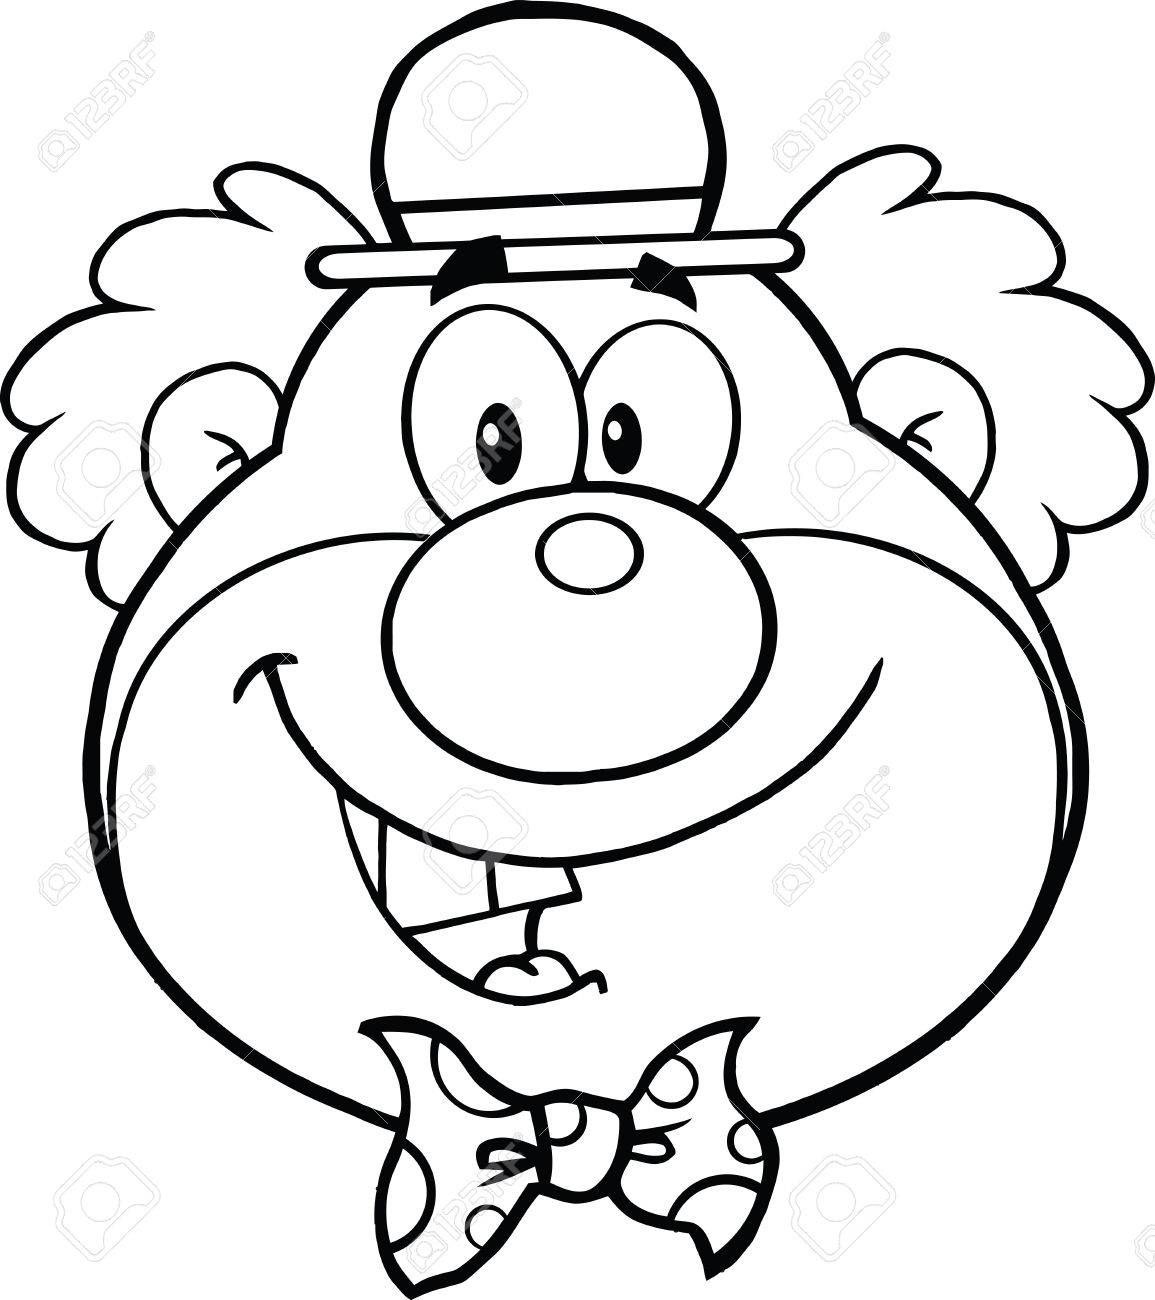 Black and white funny clown head cartoon character illustration